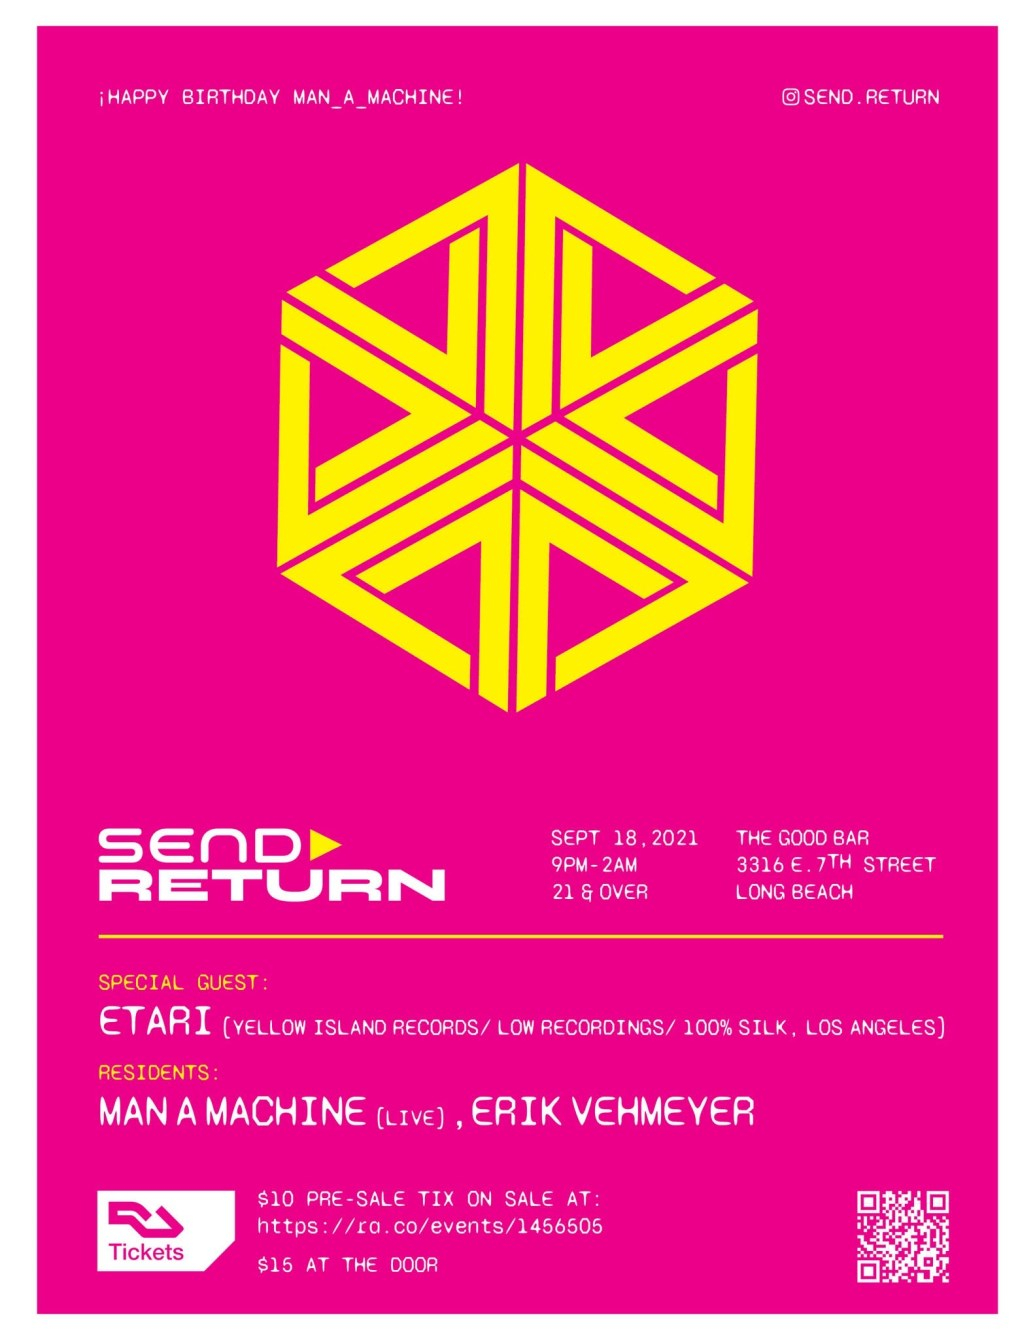 Send»return with Etari (Yellow Island Records/Low/100% Silk) & Residents - Flyer front